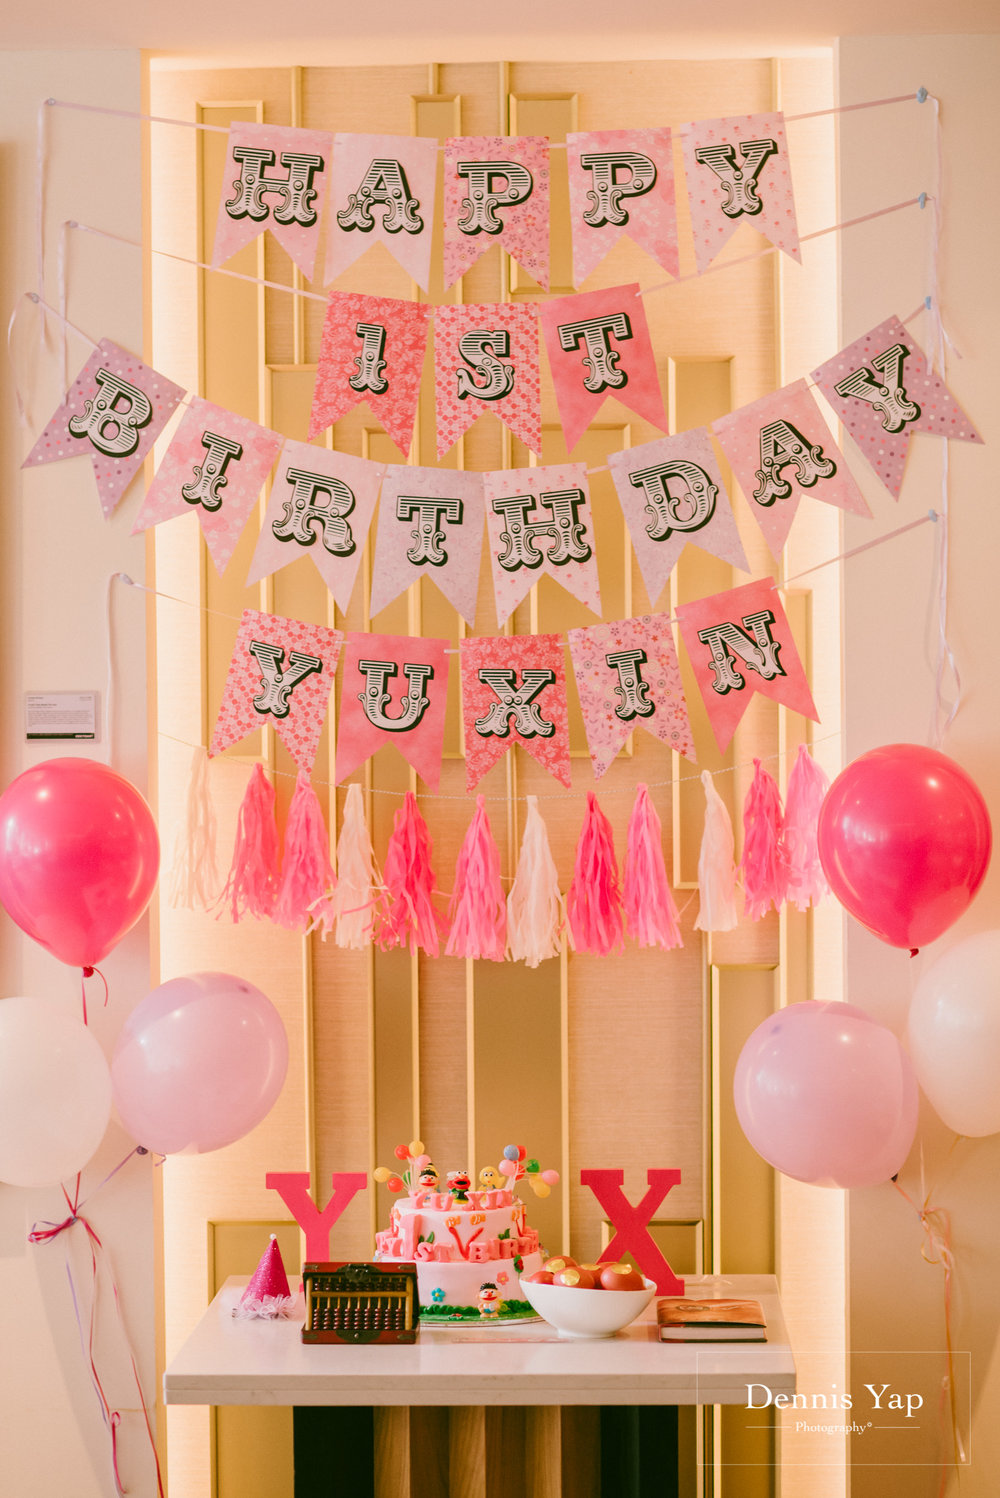 yu xing birthday baby party singapore orchard road cake dennis yap photography-11.jpg